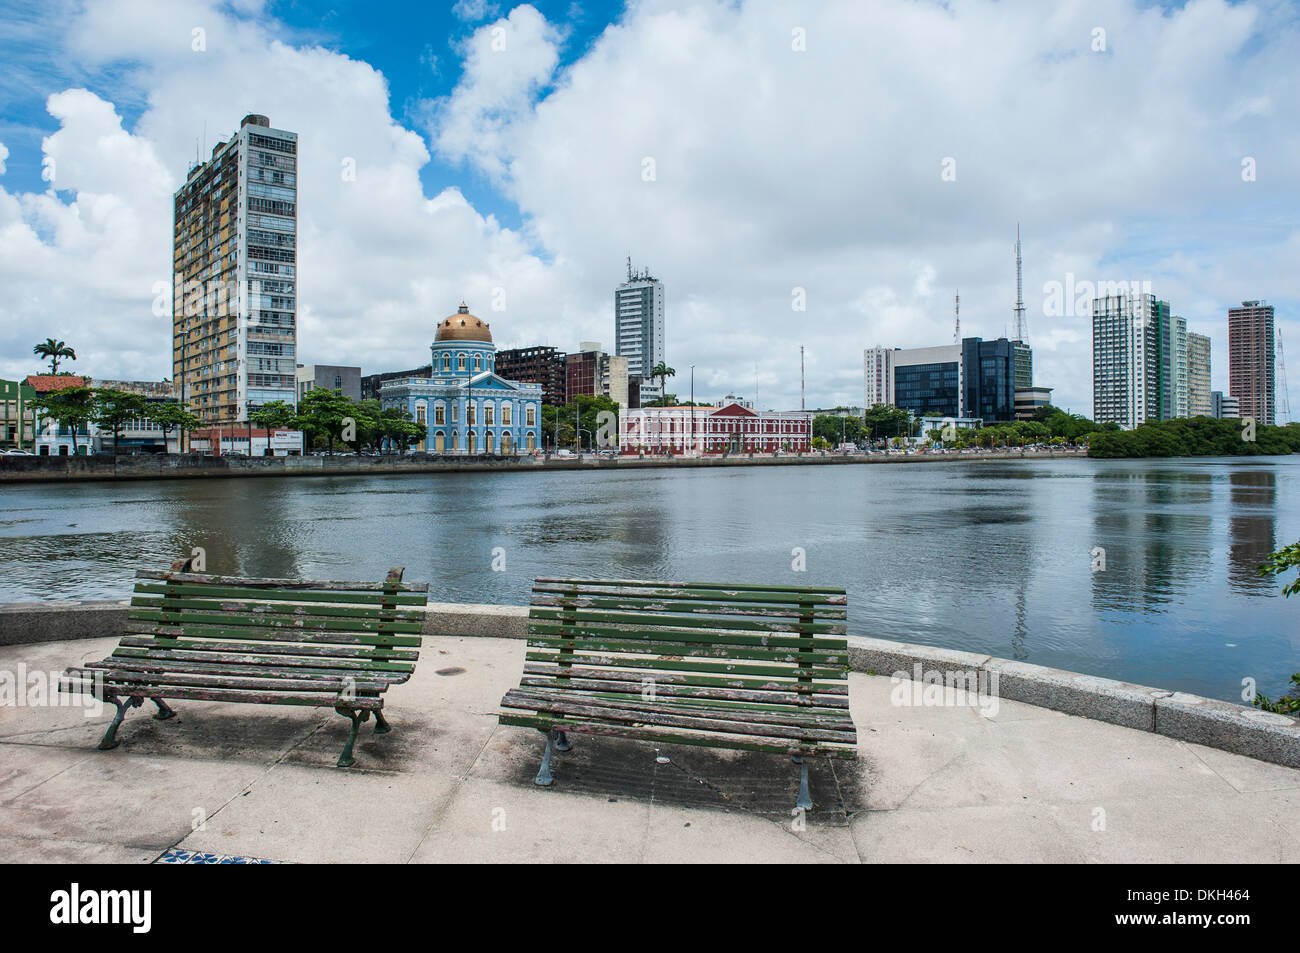 Historicla waterfront of Recife, Pernambuco, Brazil, South America - Stock Image